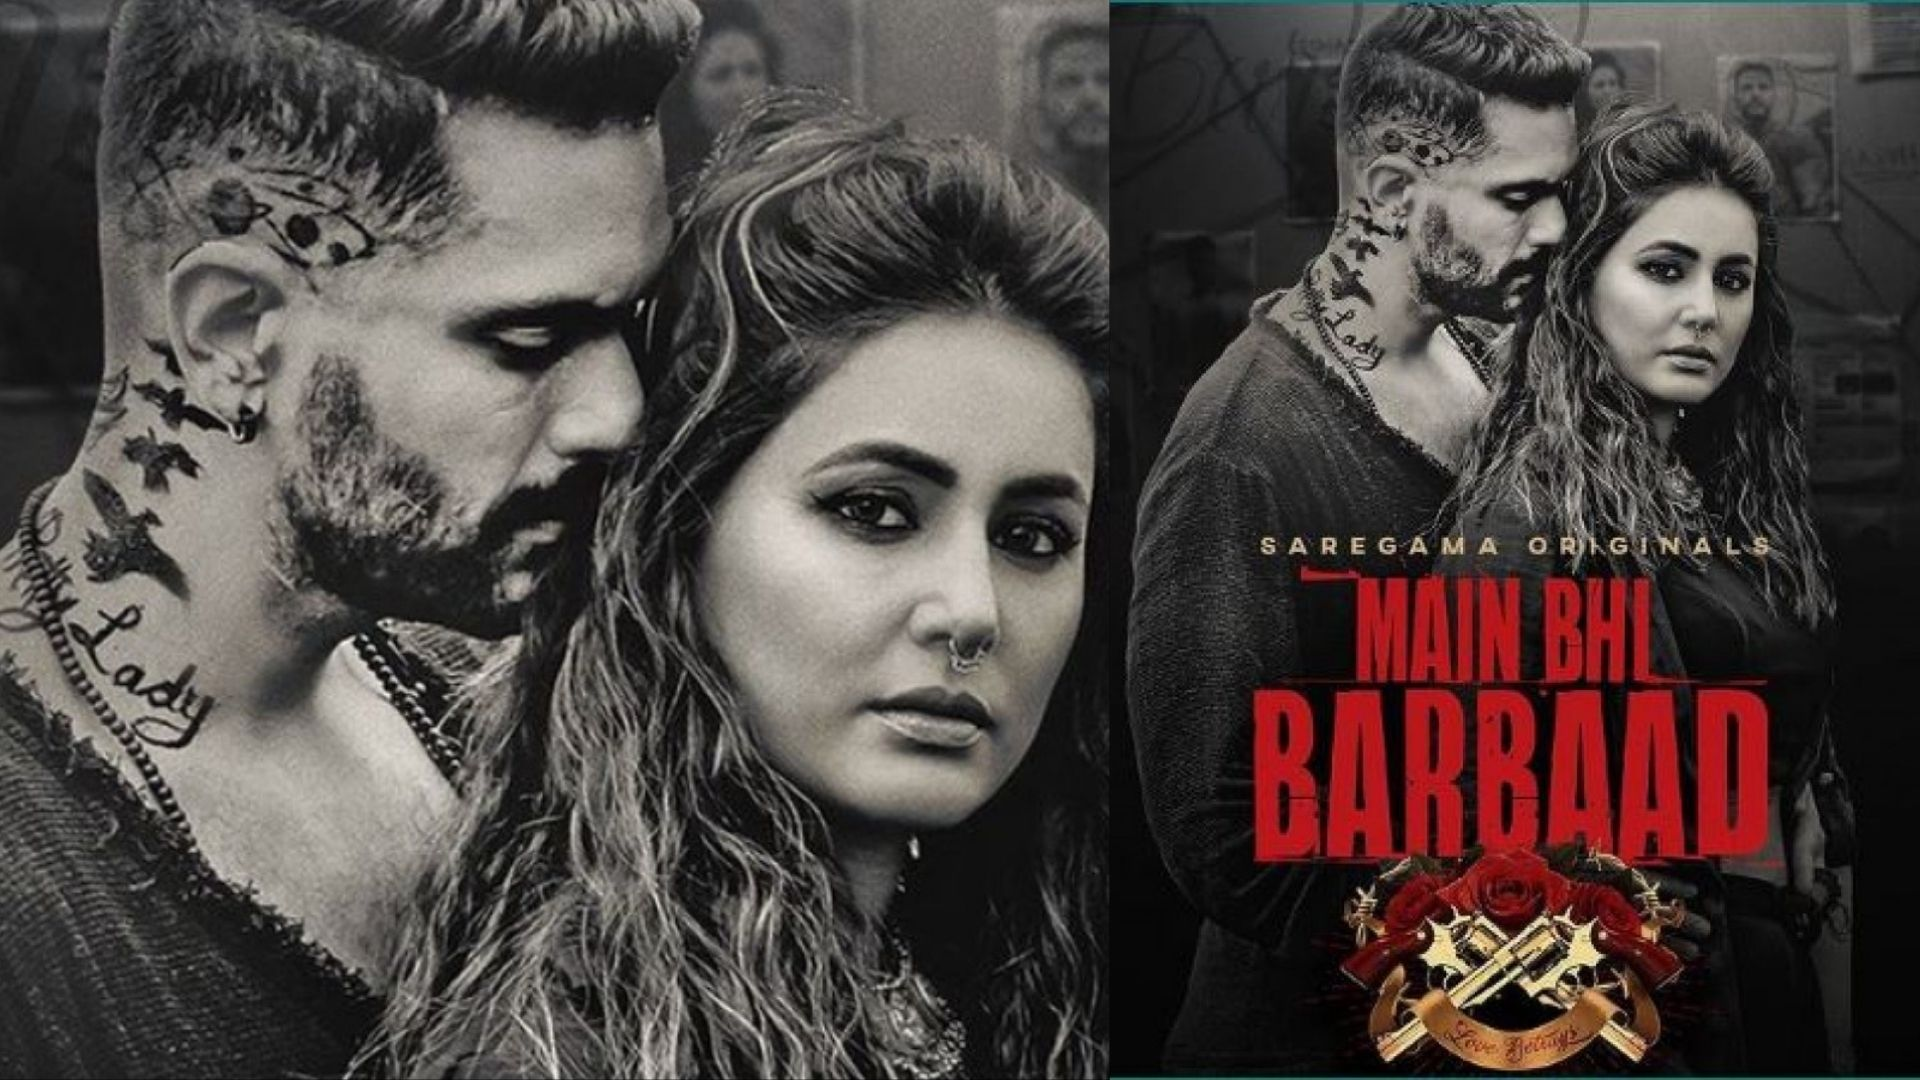 Main Bhi Barbad Teaser: Ahead Of Its Release, Hina Khan And Angad Bedi Set Social Media On Fire With Their Chemistry – VIDEO